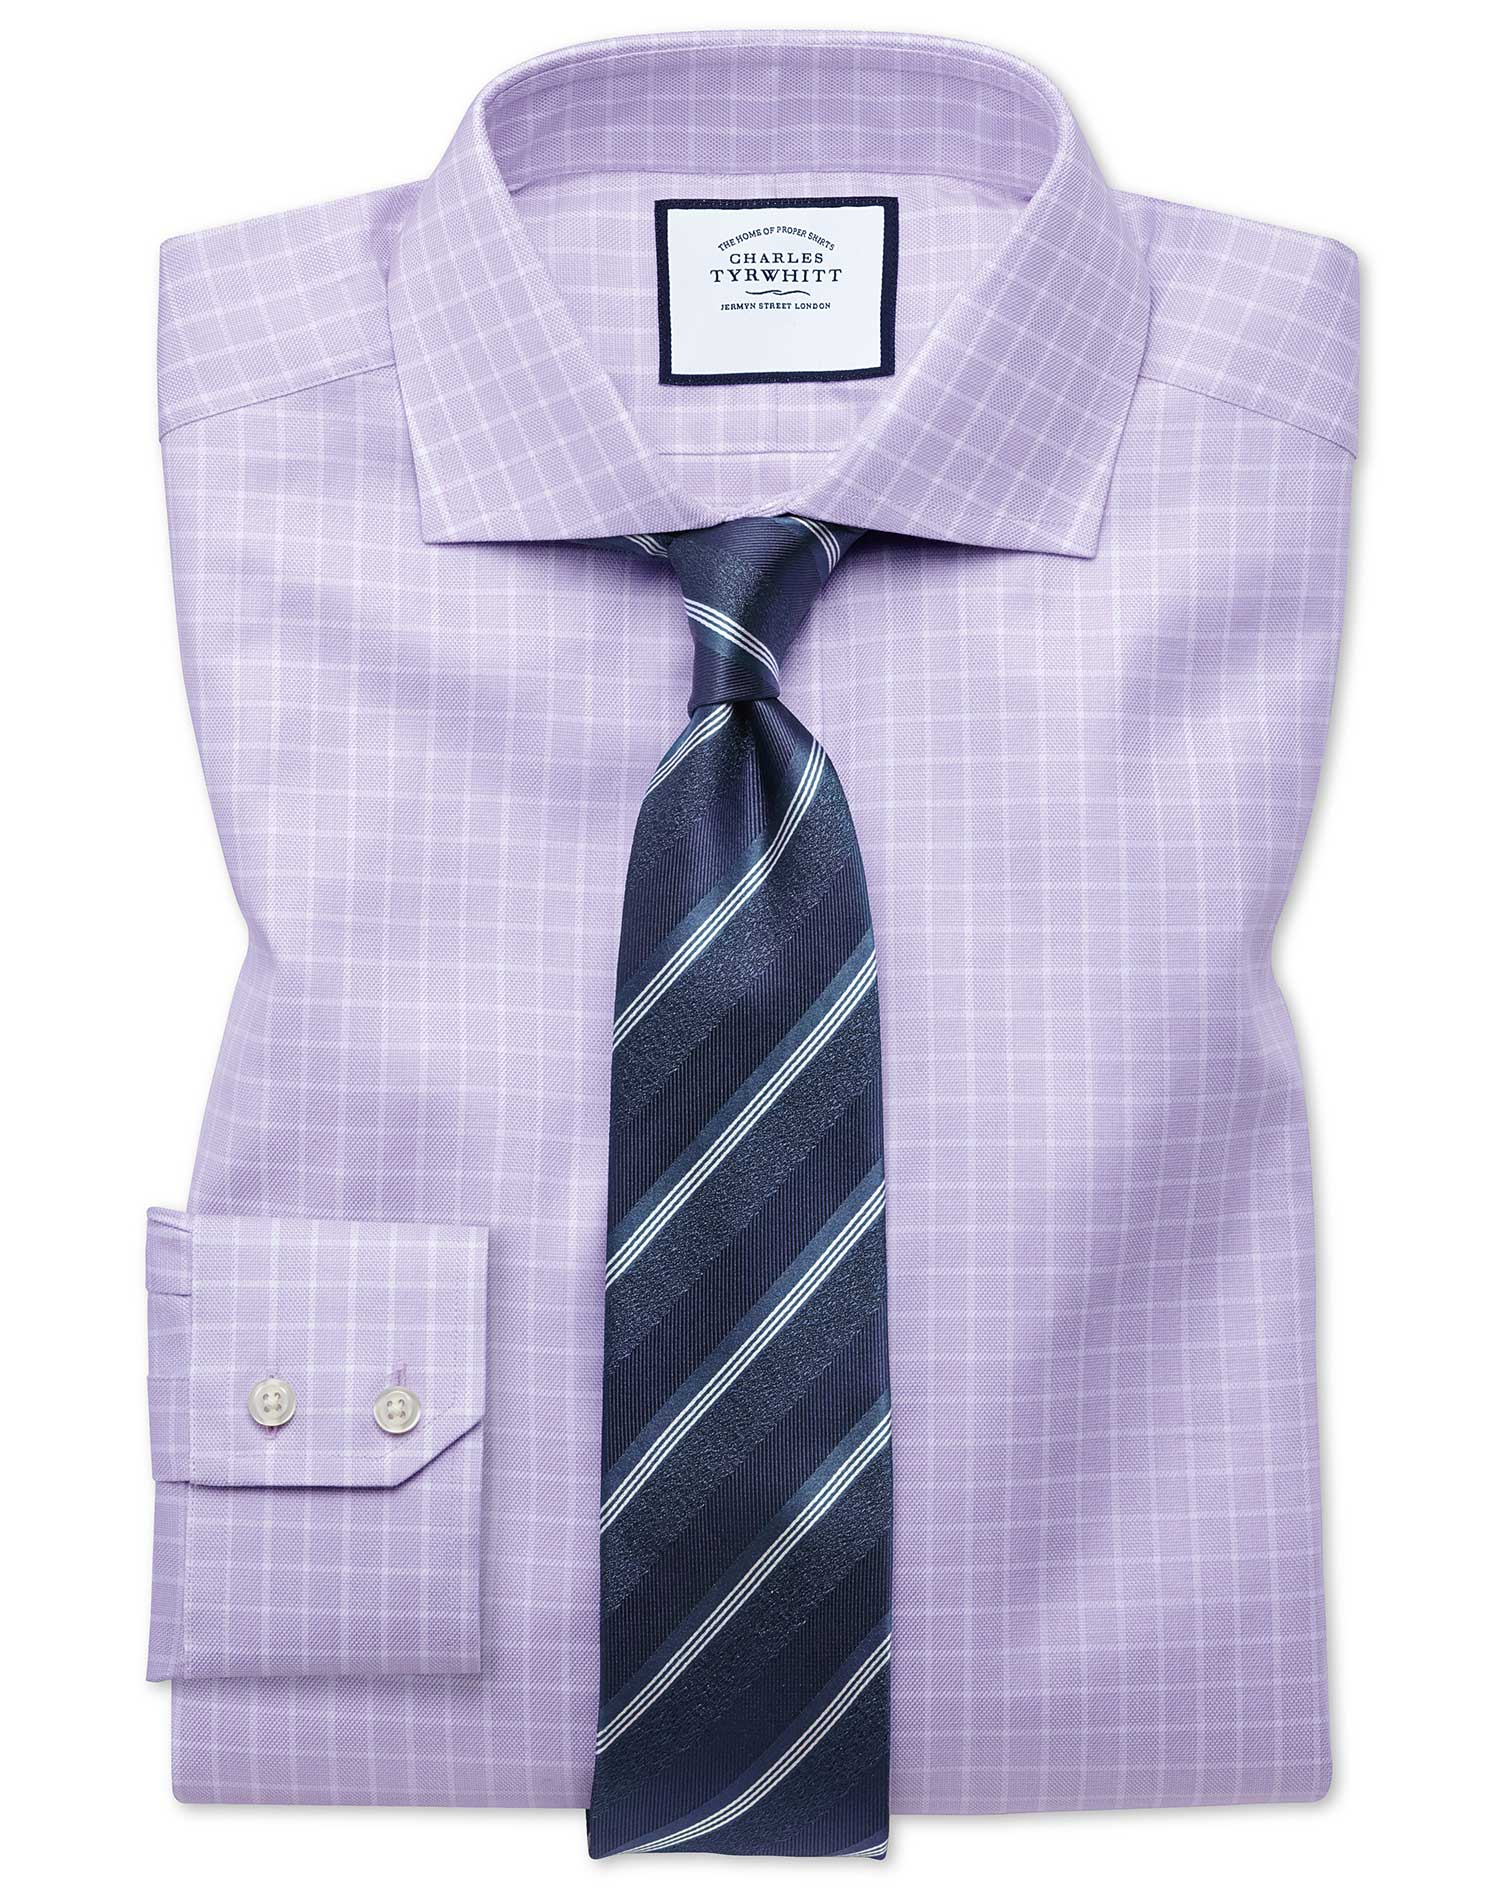 Slim Fit Textured Check Lilac Cotton Formal Shirt Single Cuff Size 16.5/36 by Charles Tyrwhitt